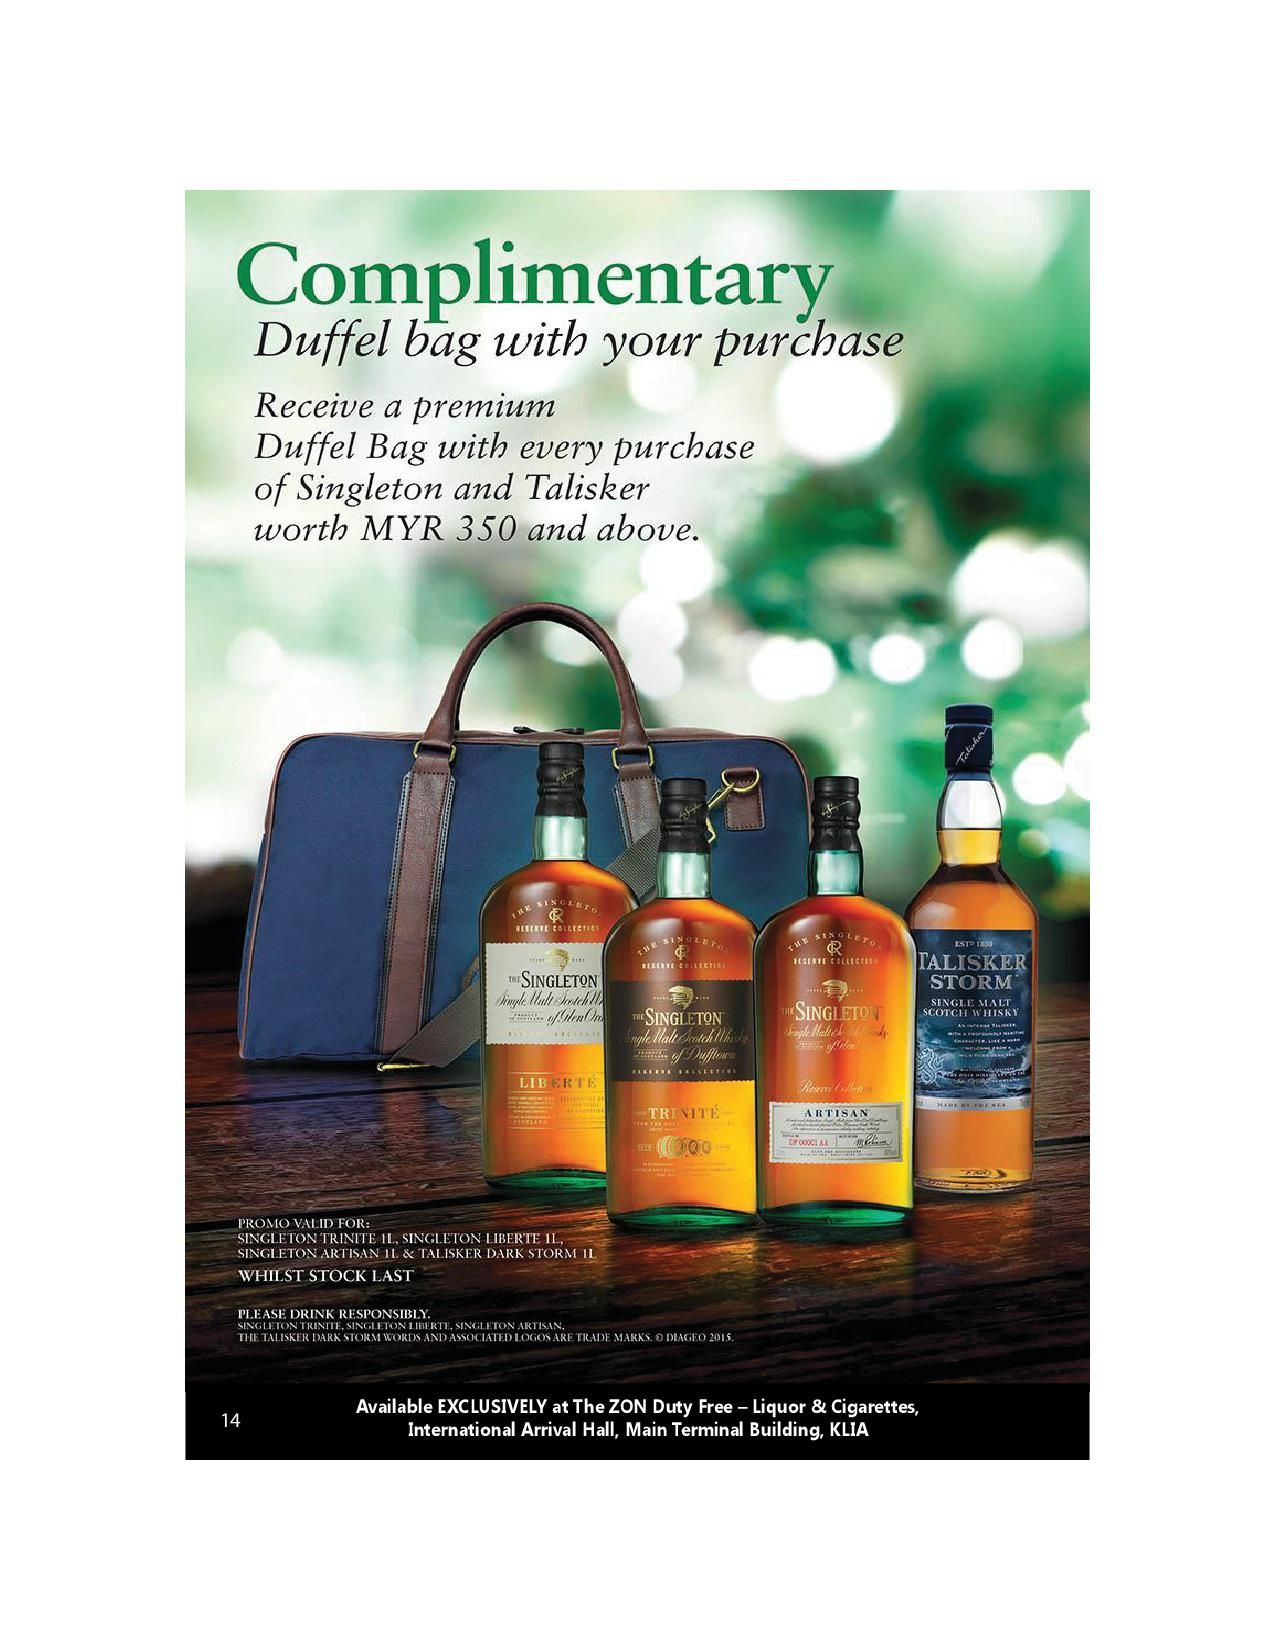 Singelton & Talisker Complimentary Duffel Bag With Your